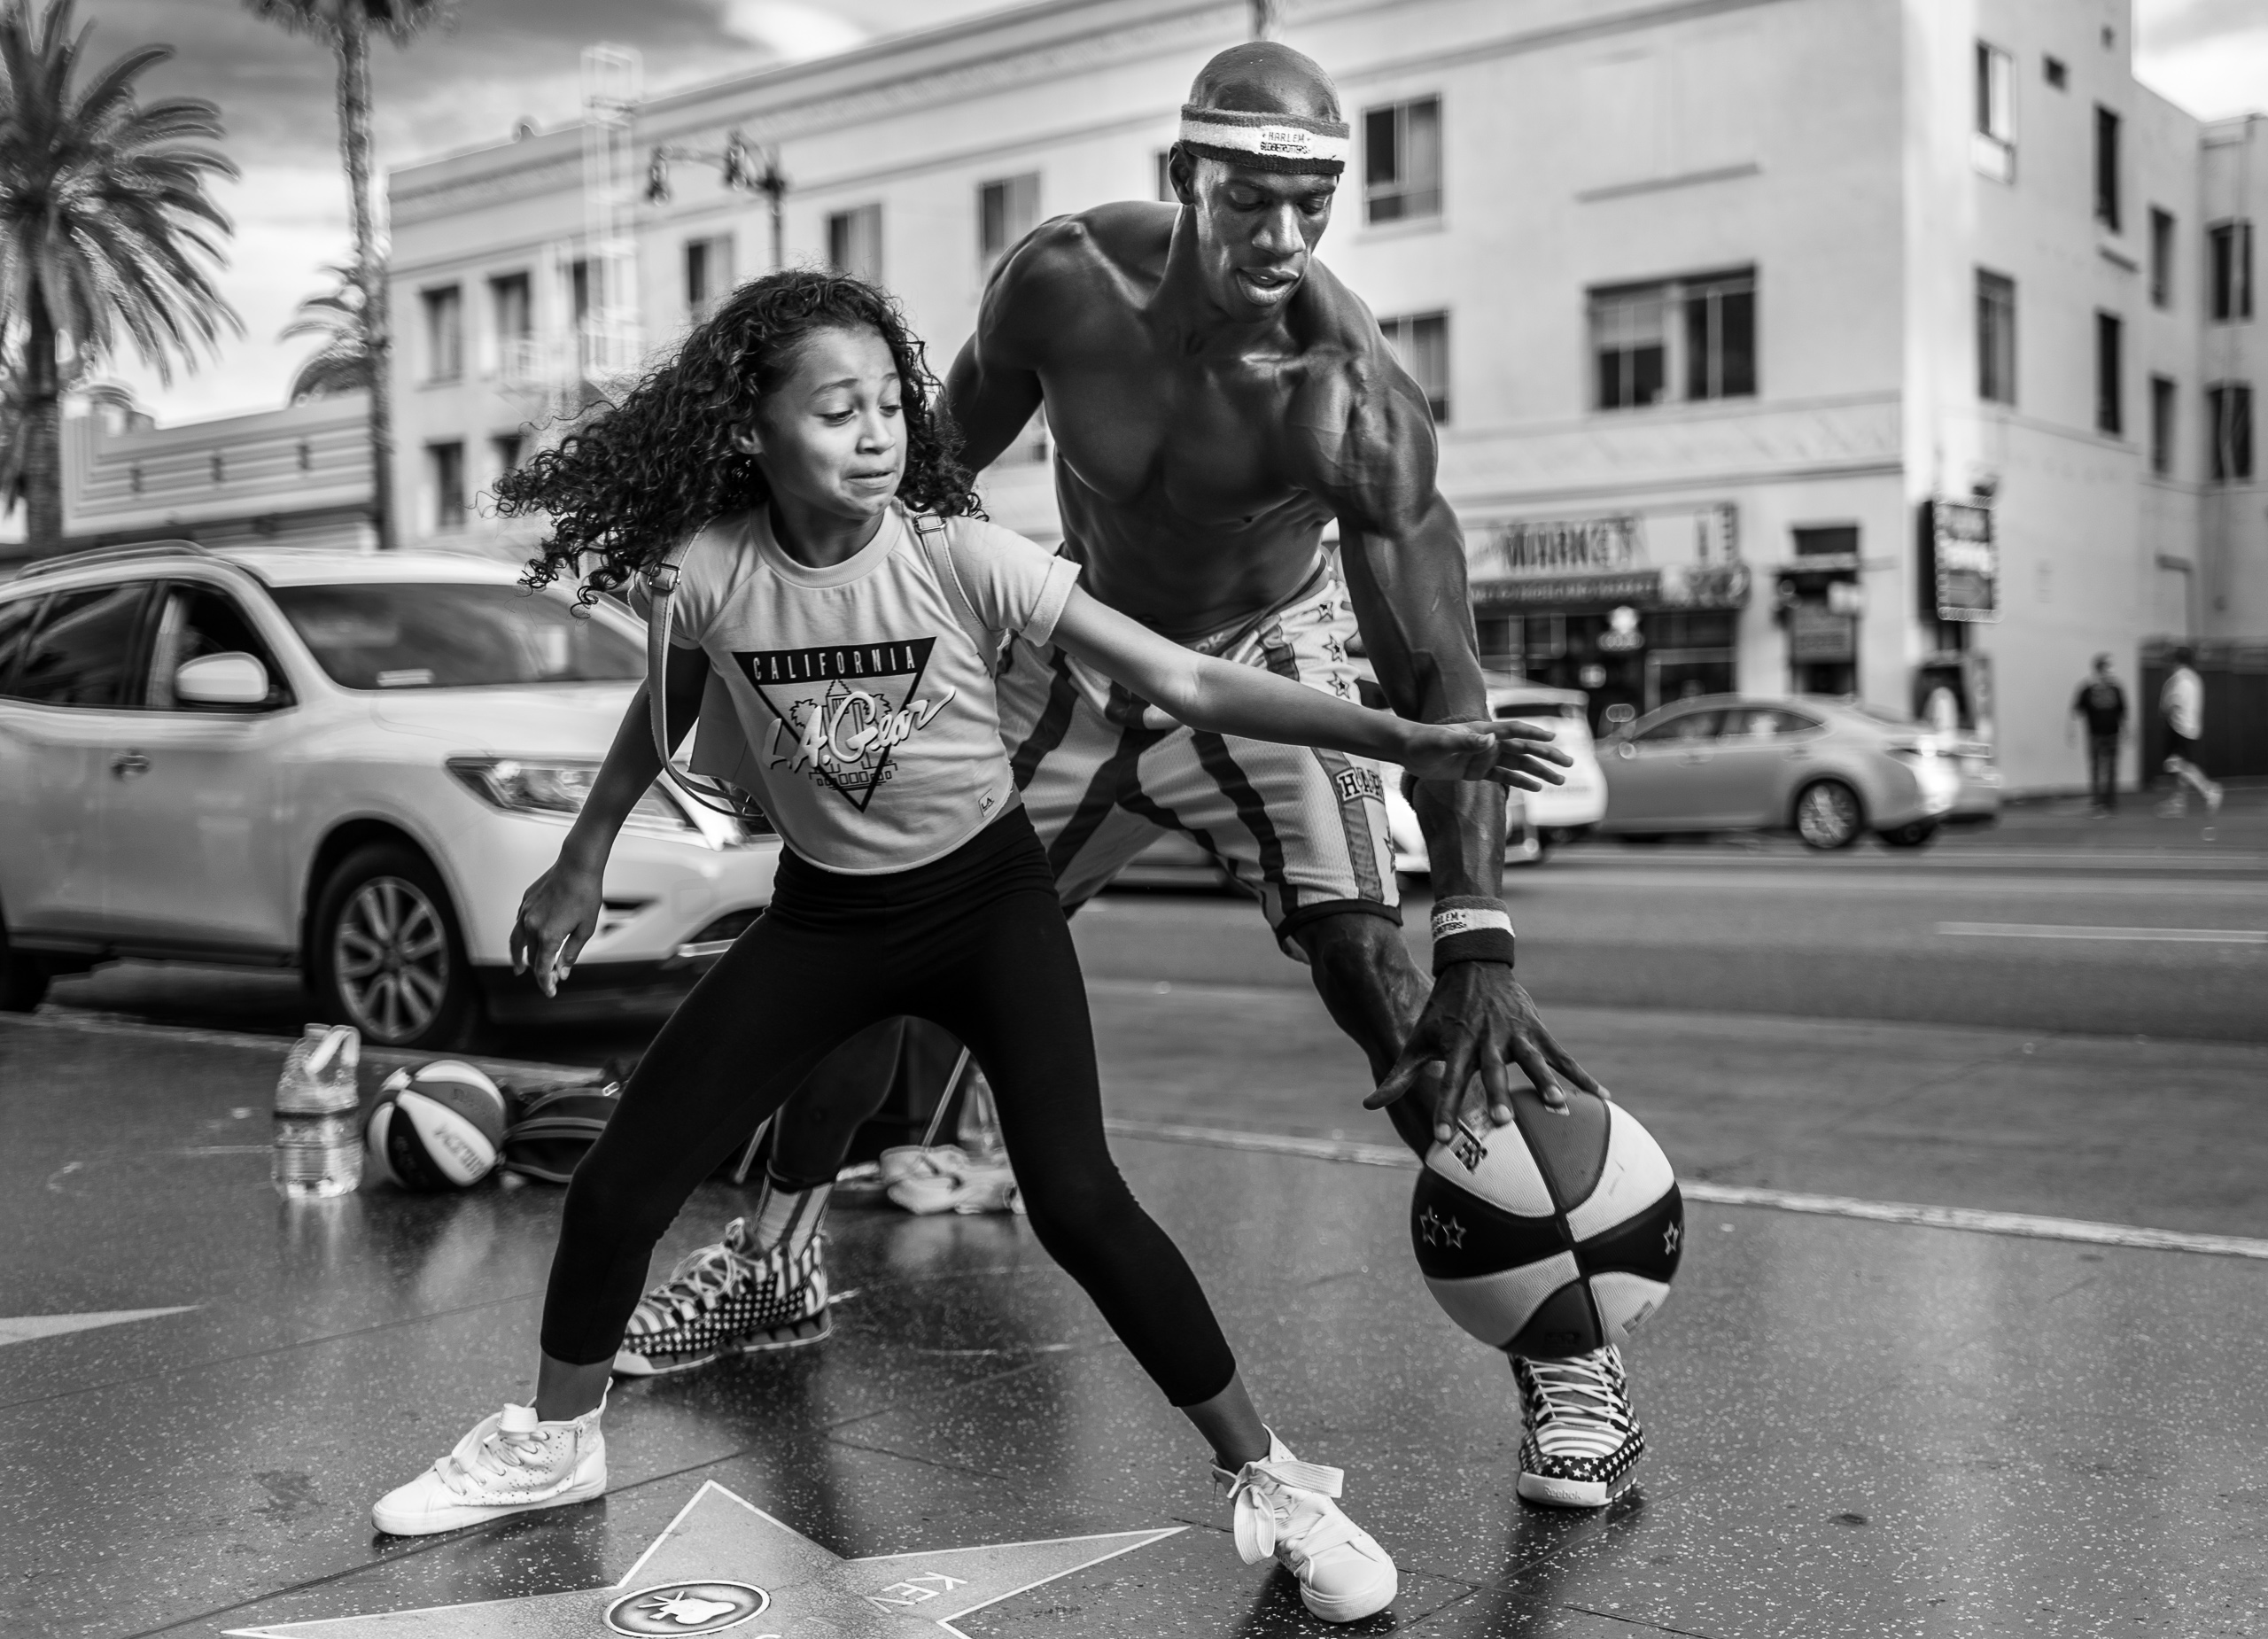 """a """"Michael Jordan"""" character on  Hollywood Blvd plays 1-on-1 with a young girl who tries in vain to take the ball away from him"""